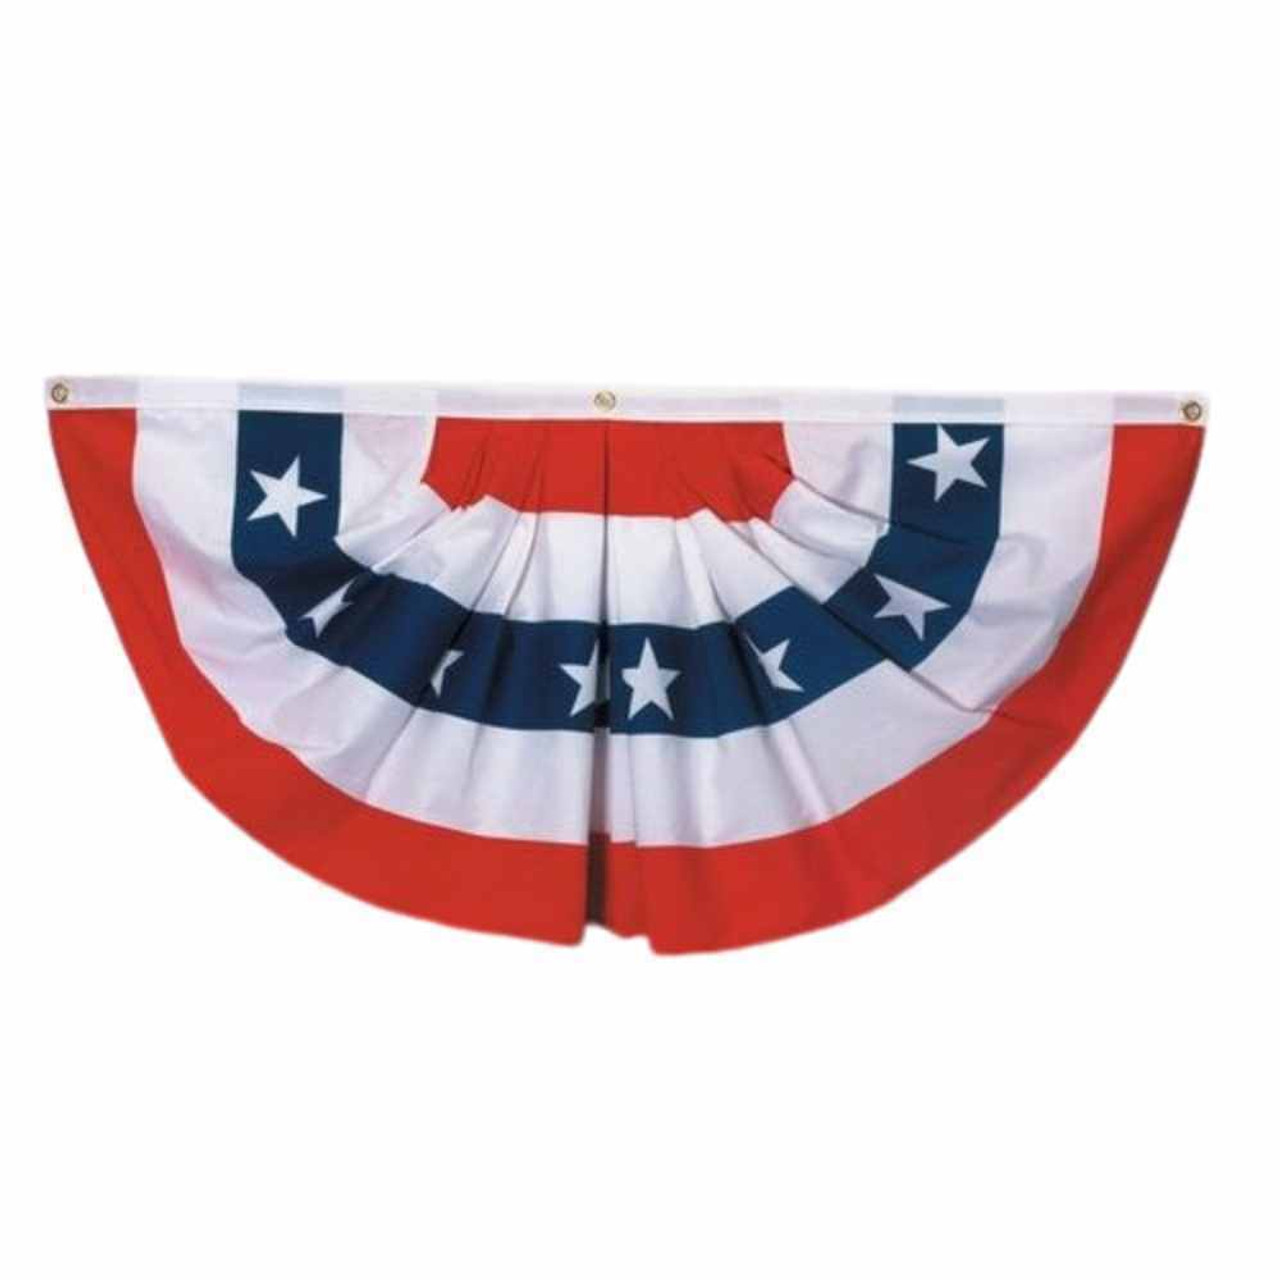 This semi-circular fan flag features five alternating stripes of red and white, with a center stripe in blue with white stars. Ruffled pleats give it a decorative flair.